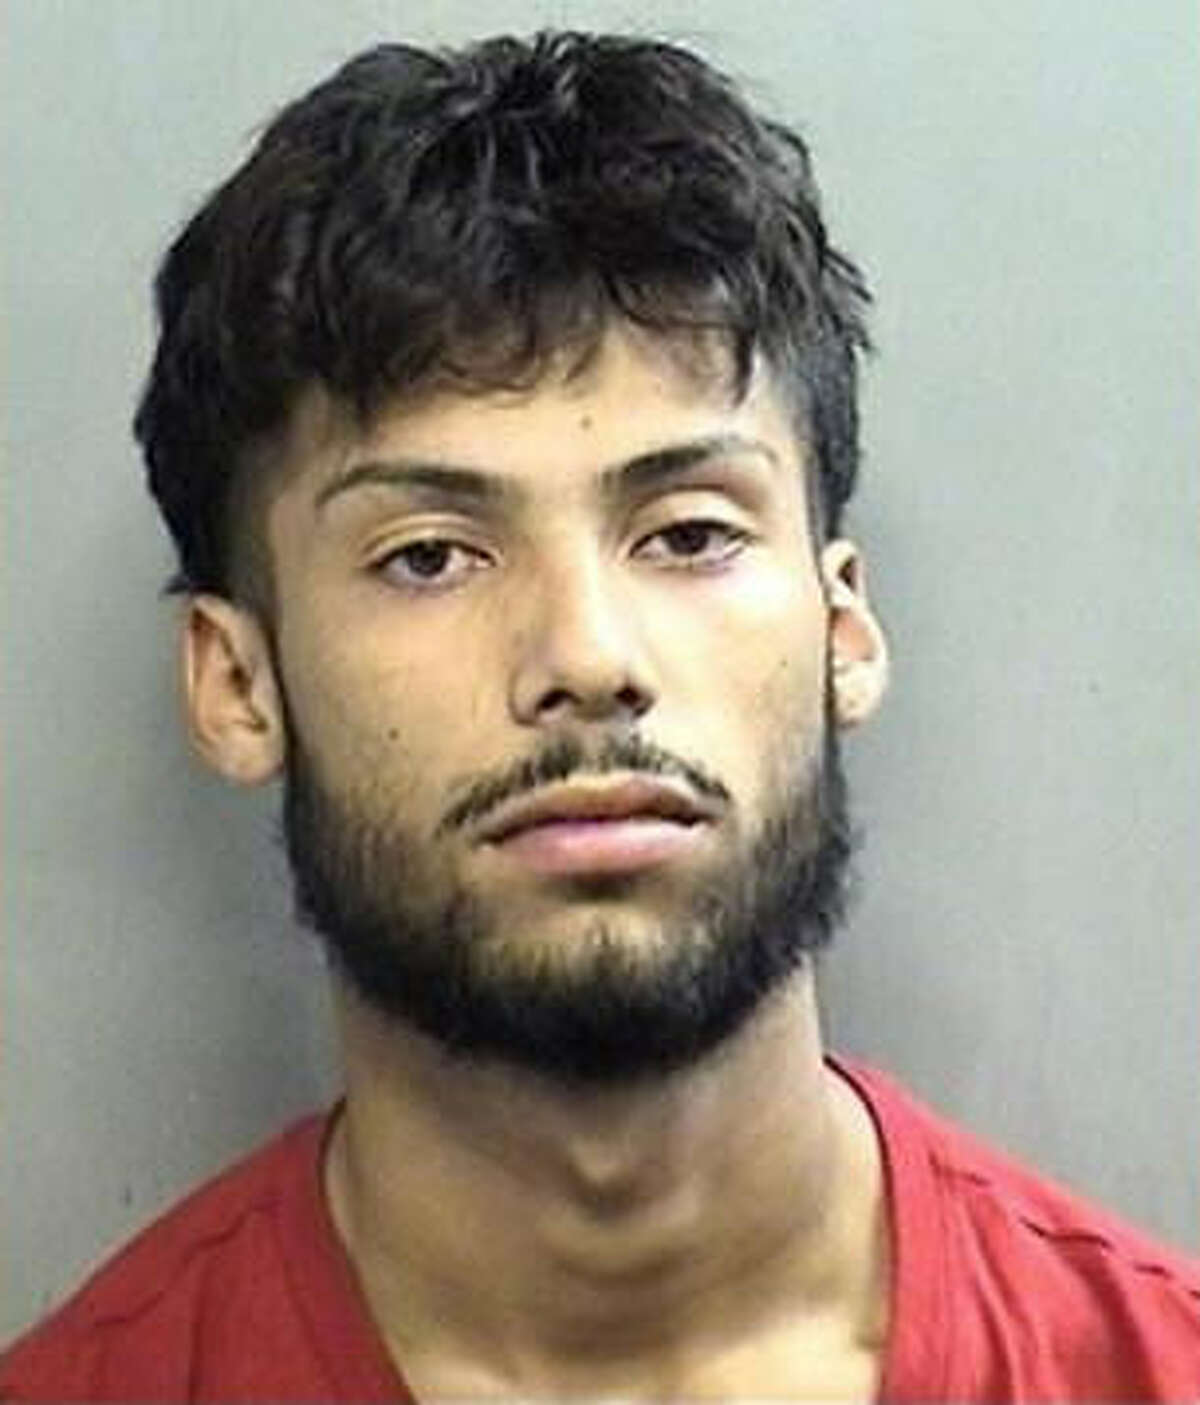 Mariano Sanchez, 18, was arrested in early September of 2017 in connection to the murder of two people who were found in a shallow grave in an Arlington backyard.